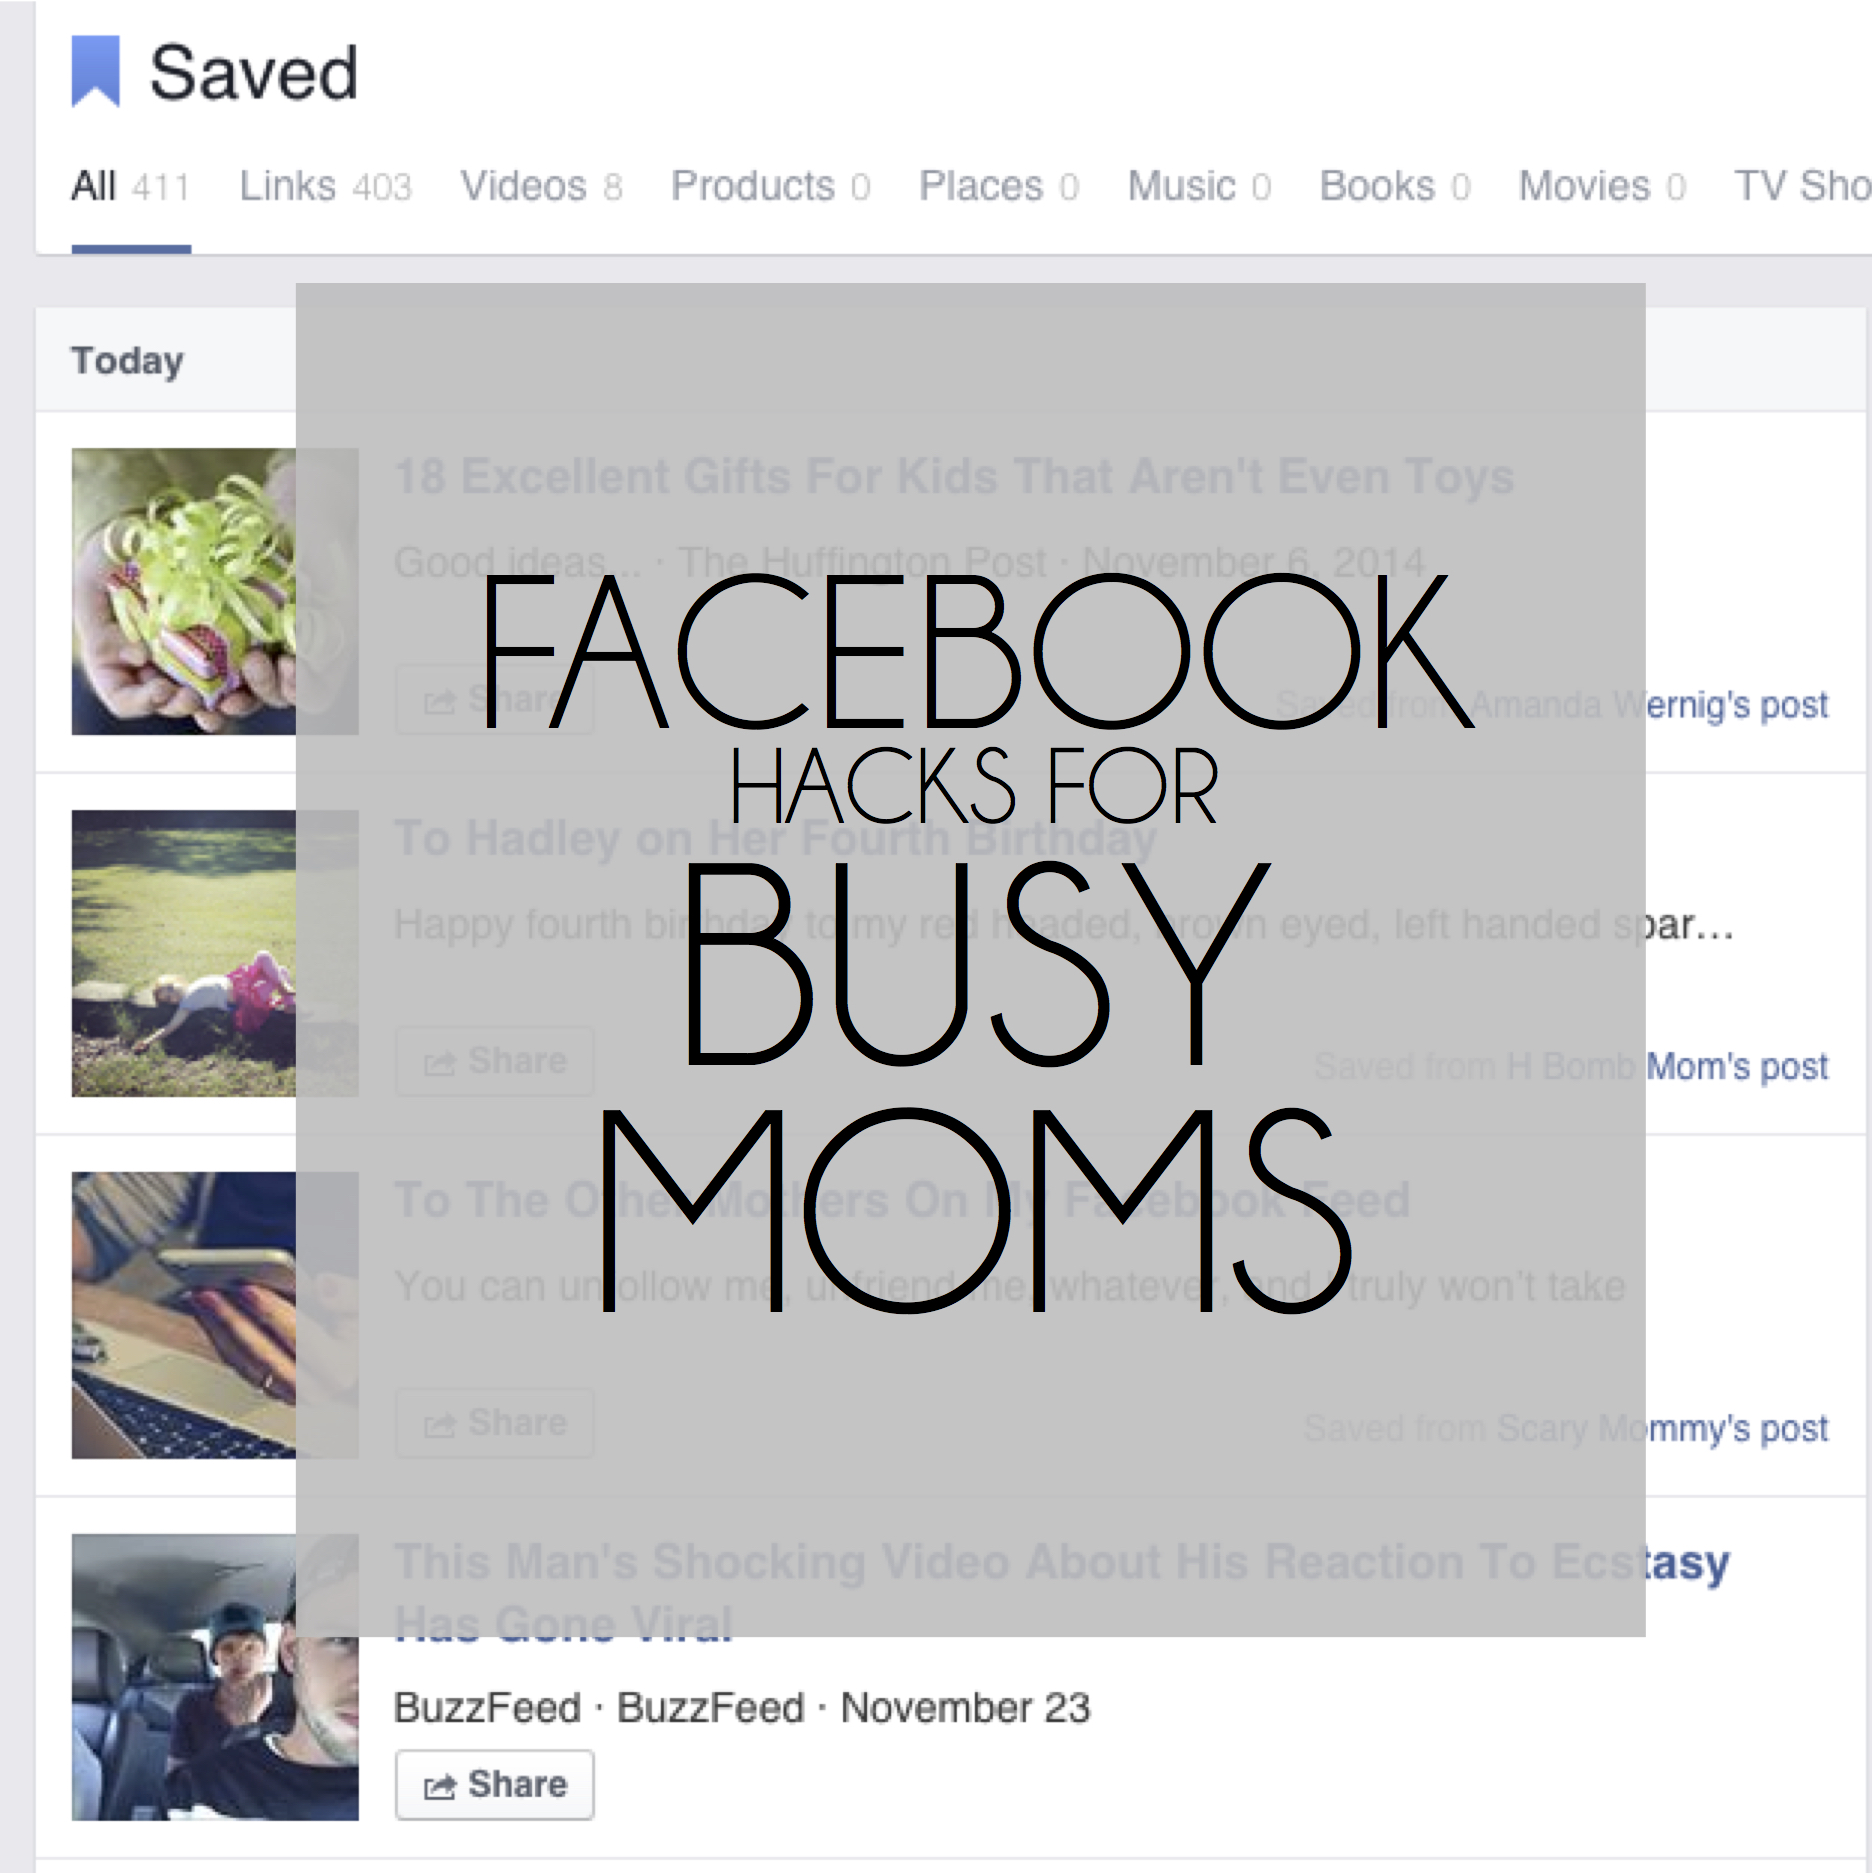 How to Save Something on Facebook